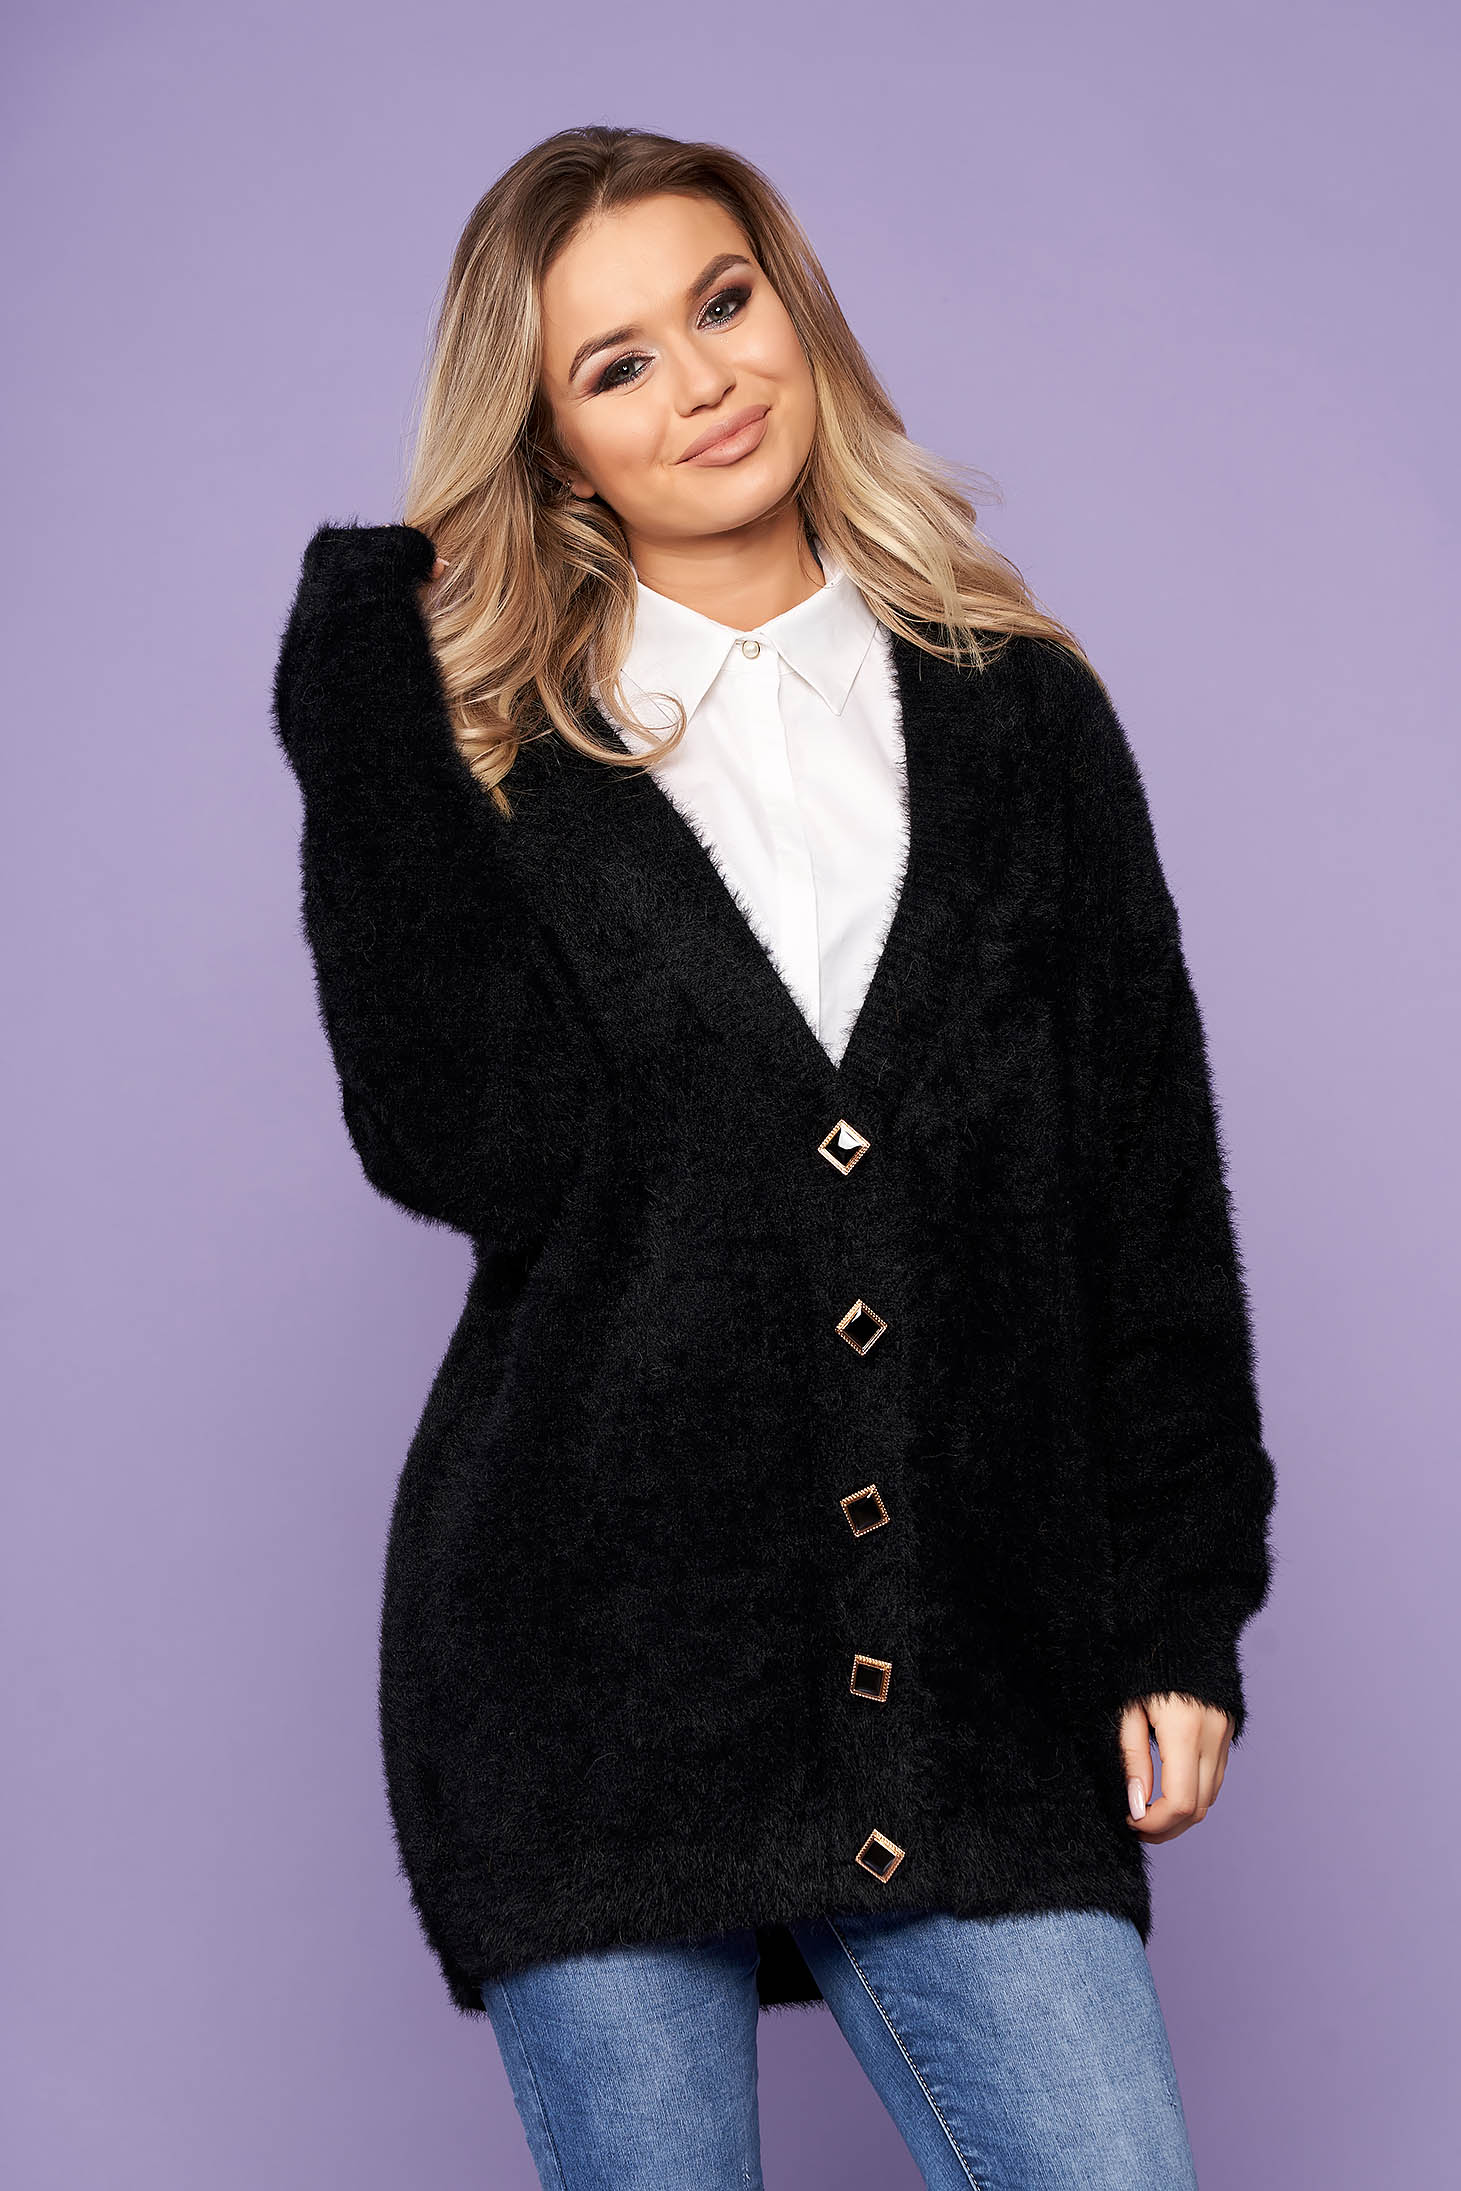 Black cardigan elegant with v-neckline long sleeved with buttons